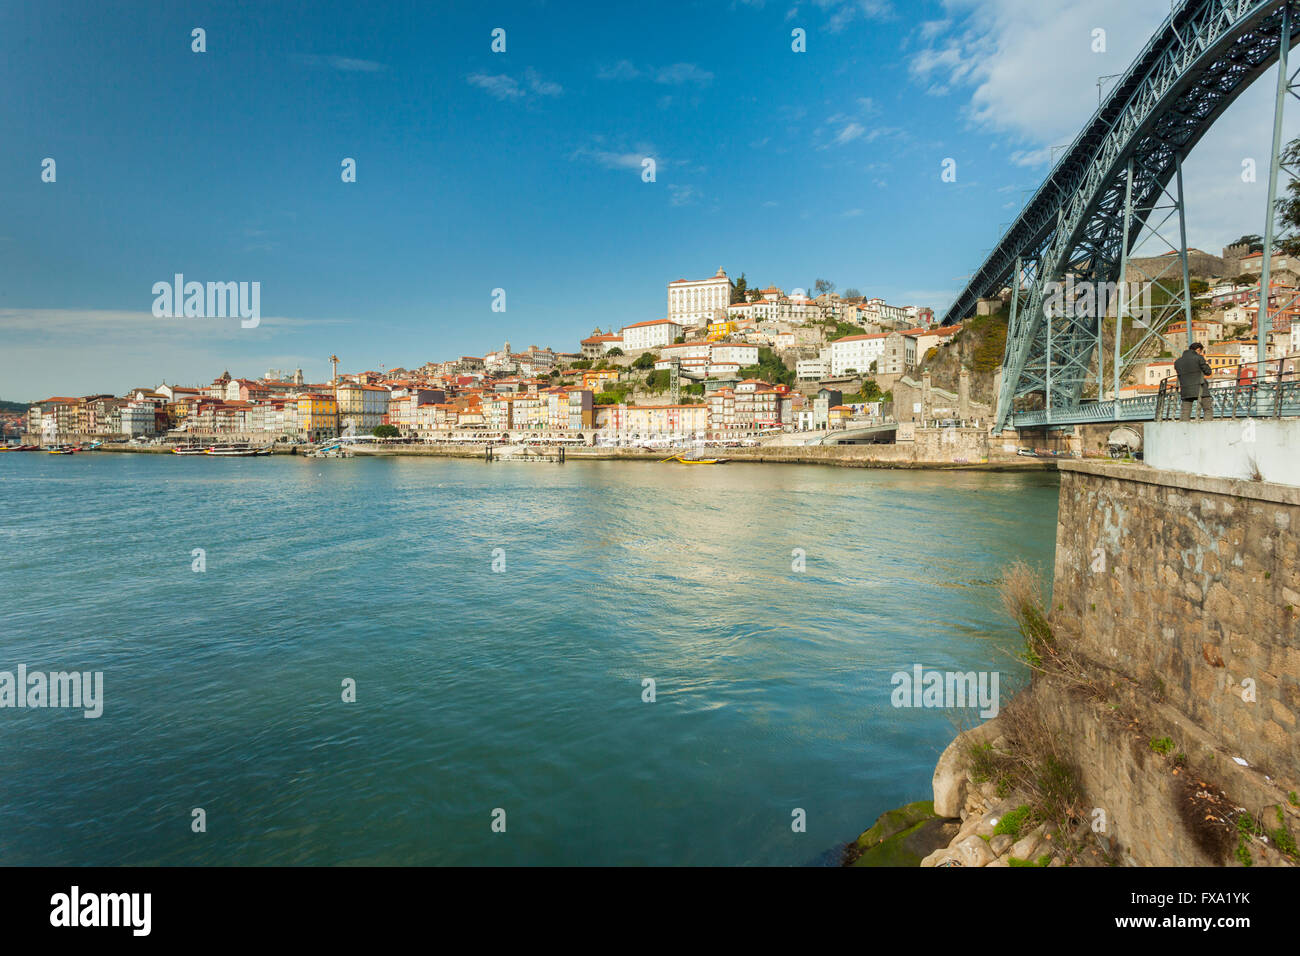 porto portugal bridge stockfotos porto portugal bridge bilder alamy. Black Bedroom Furniture Sets. Home Design Ideas